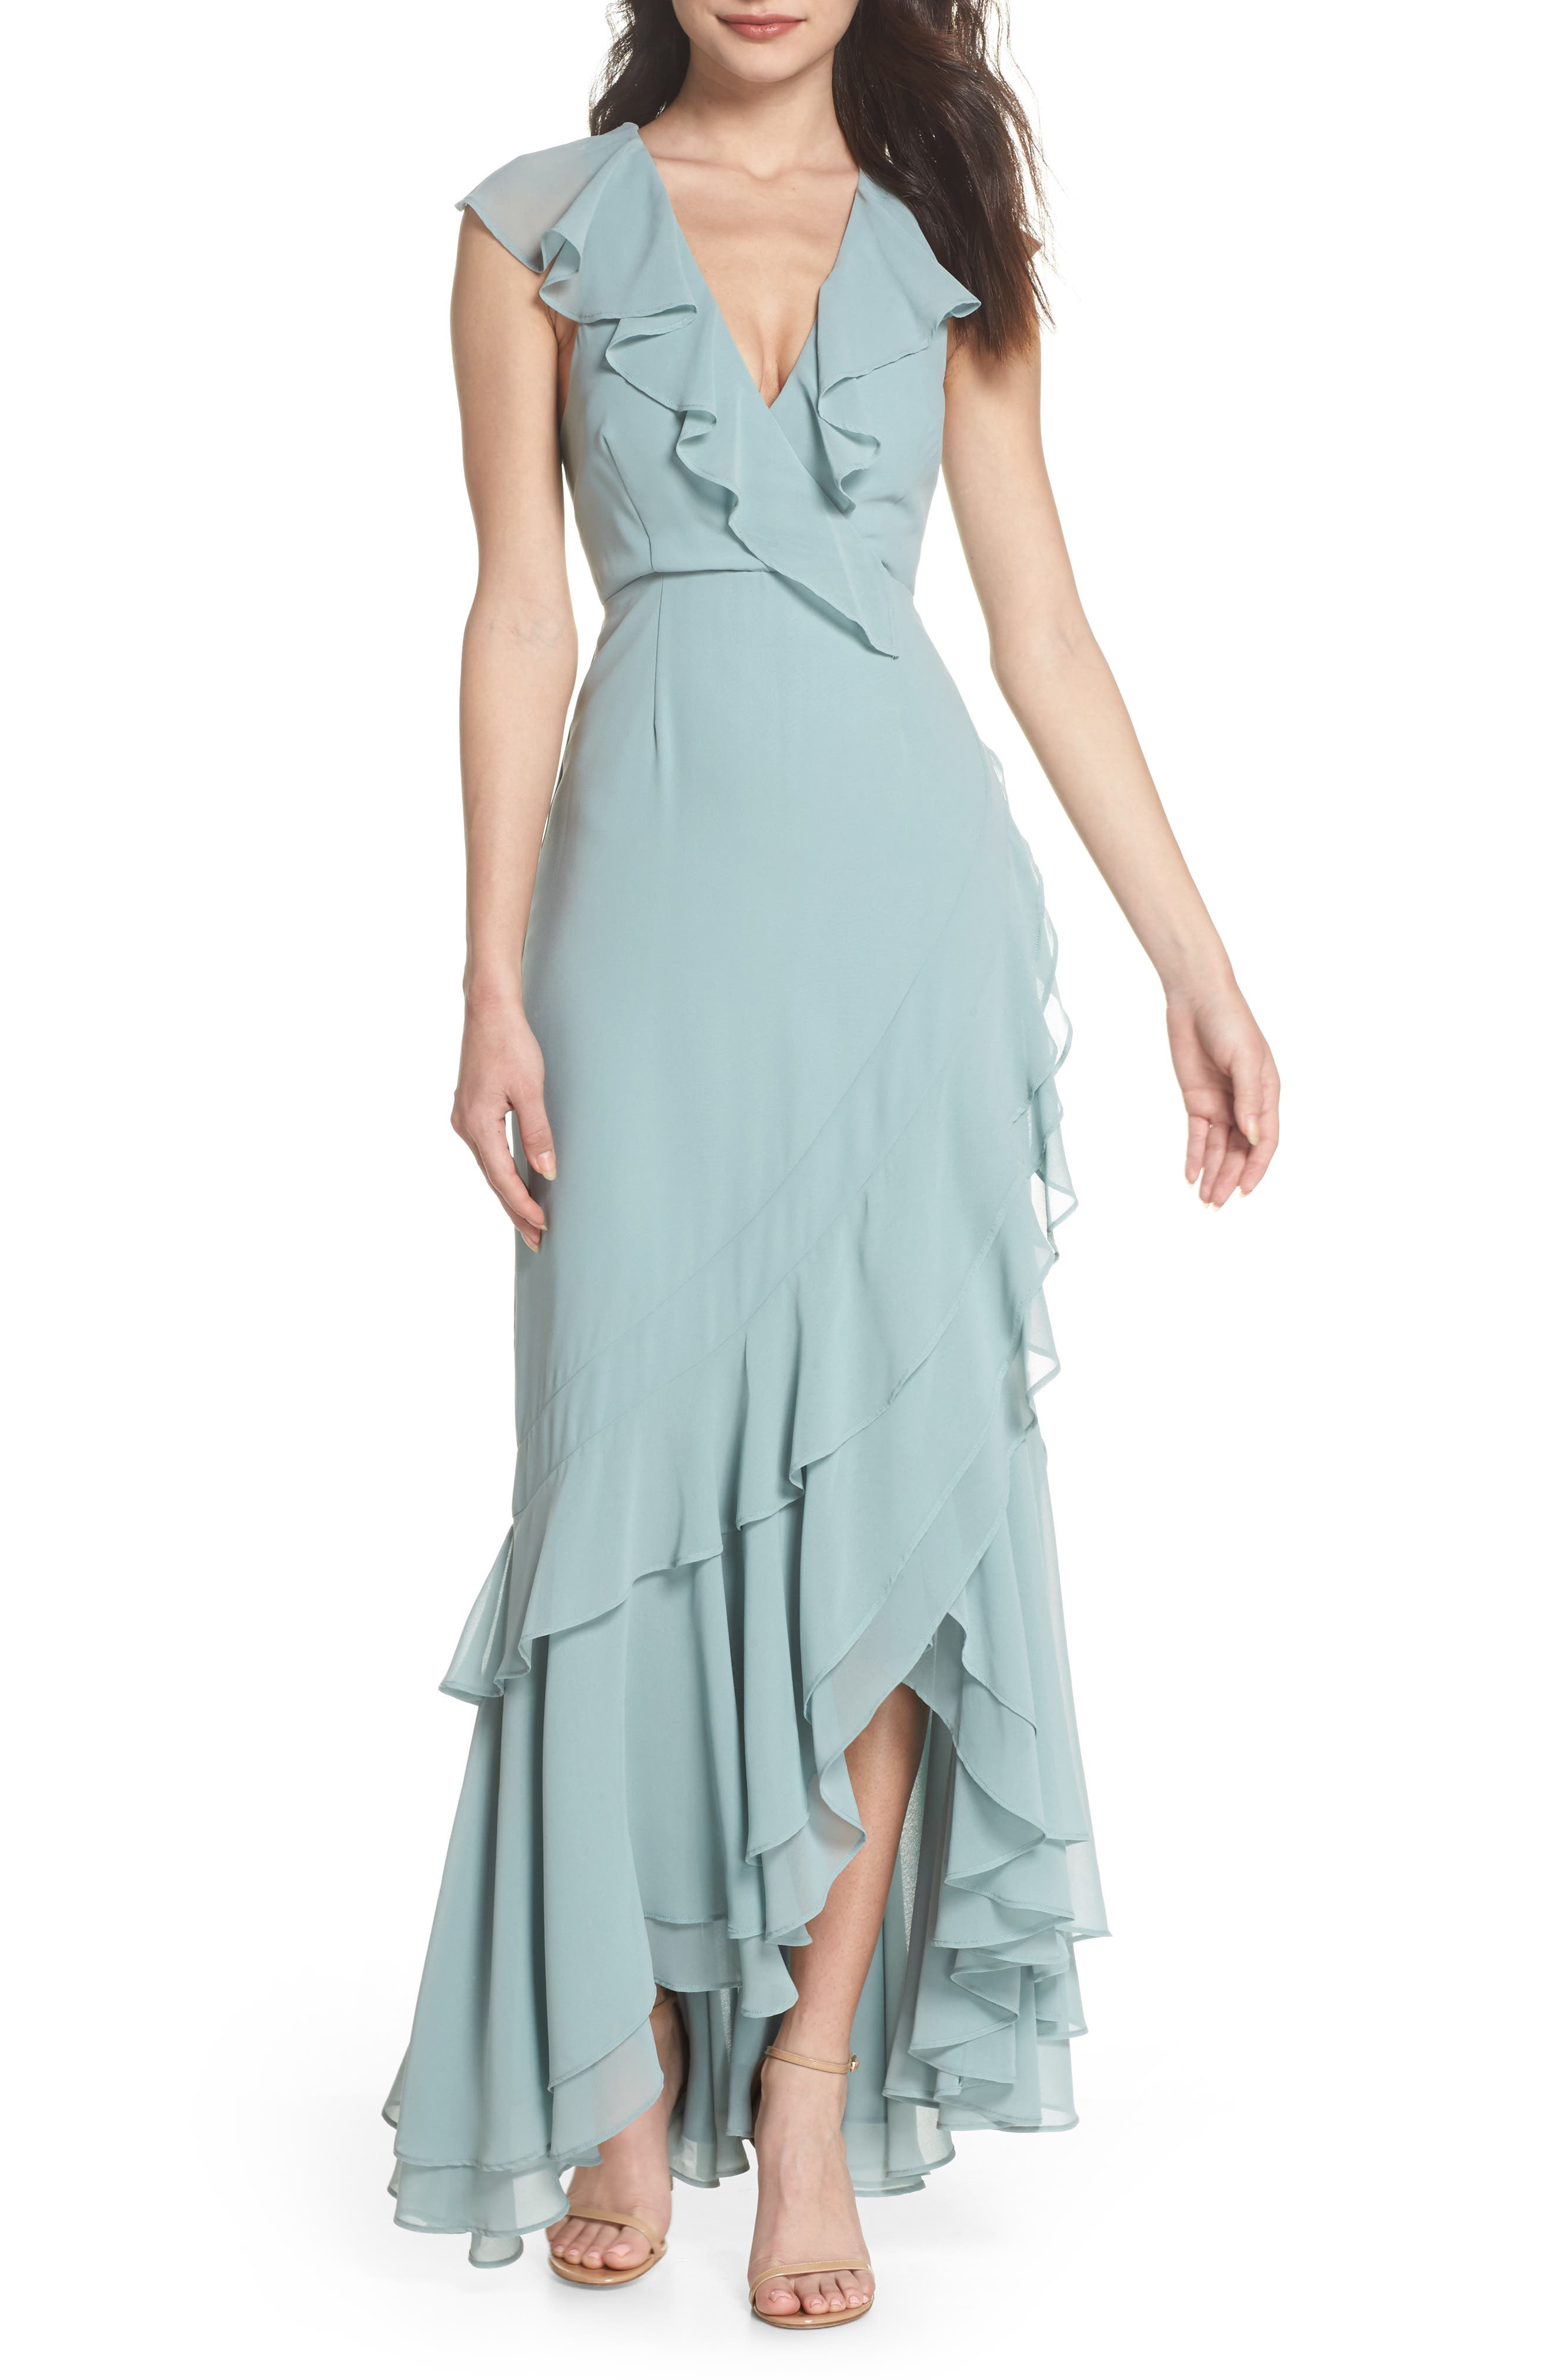 C/MEO Be About You Ruffle Gown,                             Alternate thumbnail 5, color,                             330